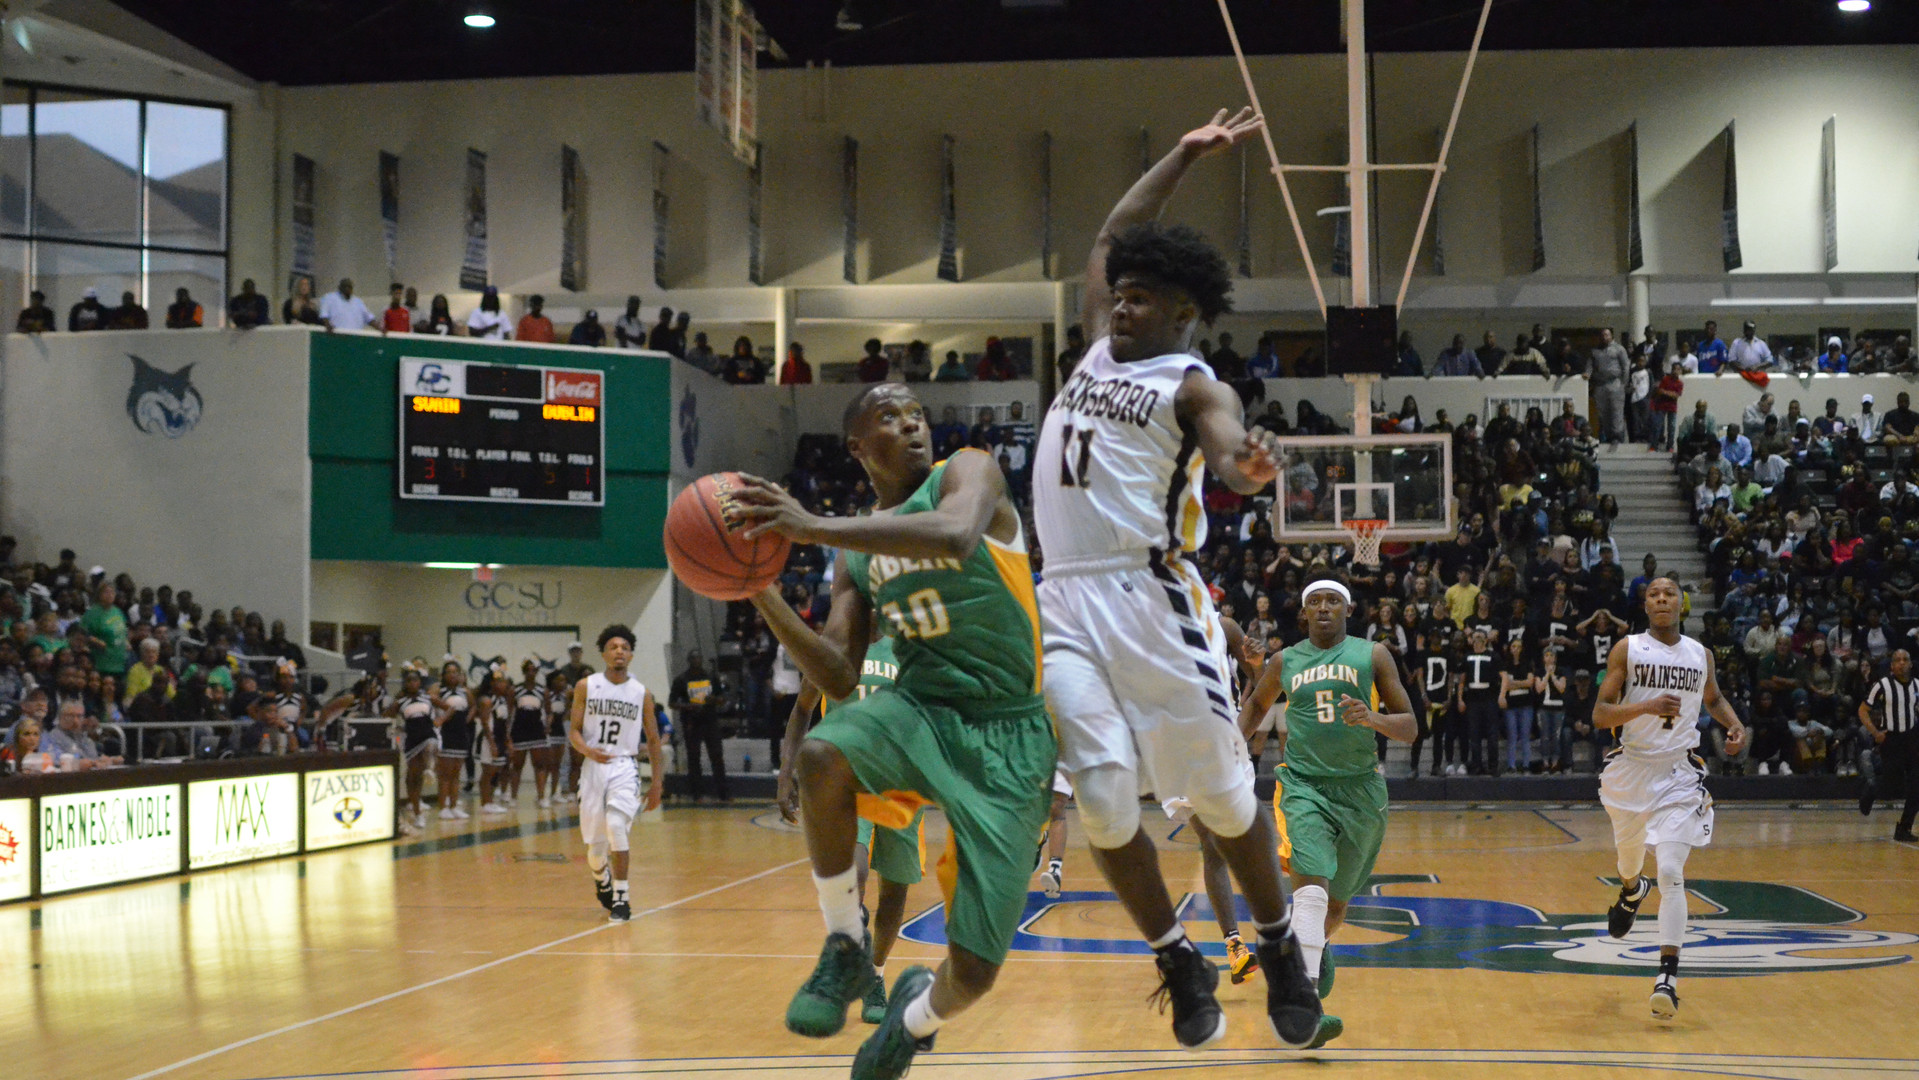 Swainsboro defender Jaylan McKinney leaps to block the shot of Dublin's Holden Baisden during a 2017 state semifinal game at Georgia College in Milledgeville. The Tigers' frustrating defense short-circuited Dublin's hot shooting in a heartbreaking defeat for the Irish after a second-consecutive deep playoff run.